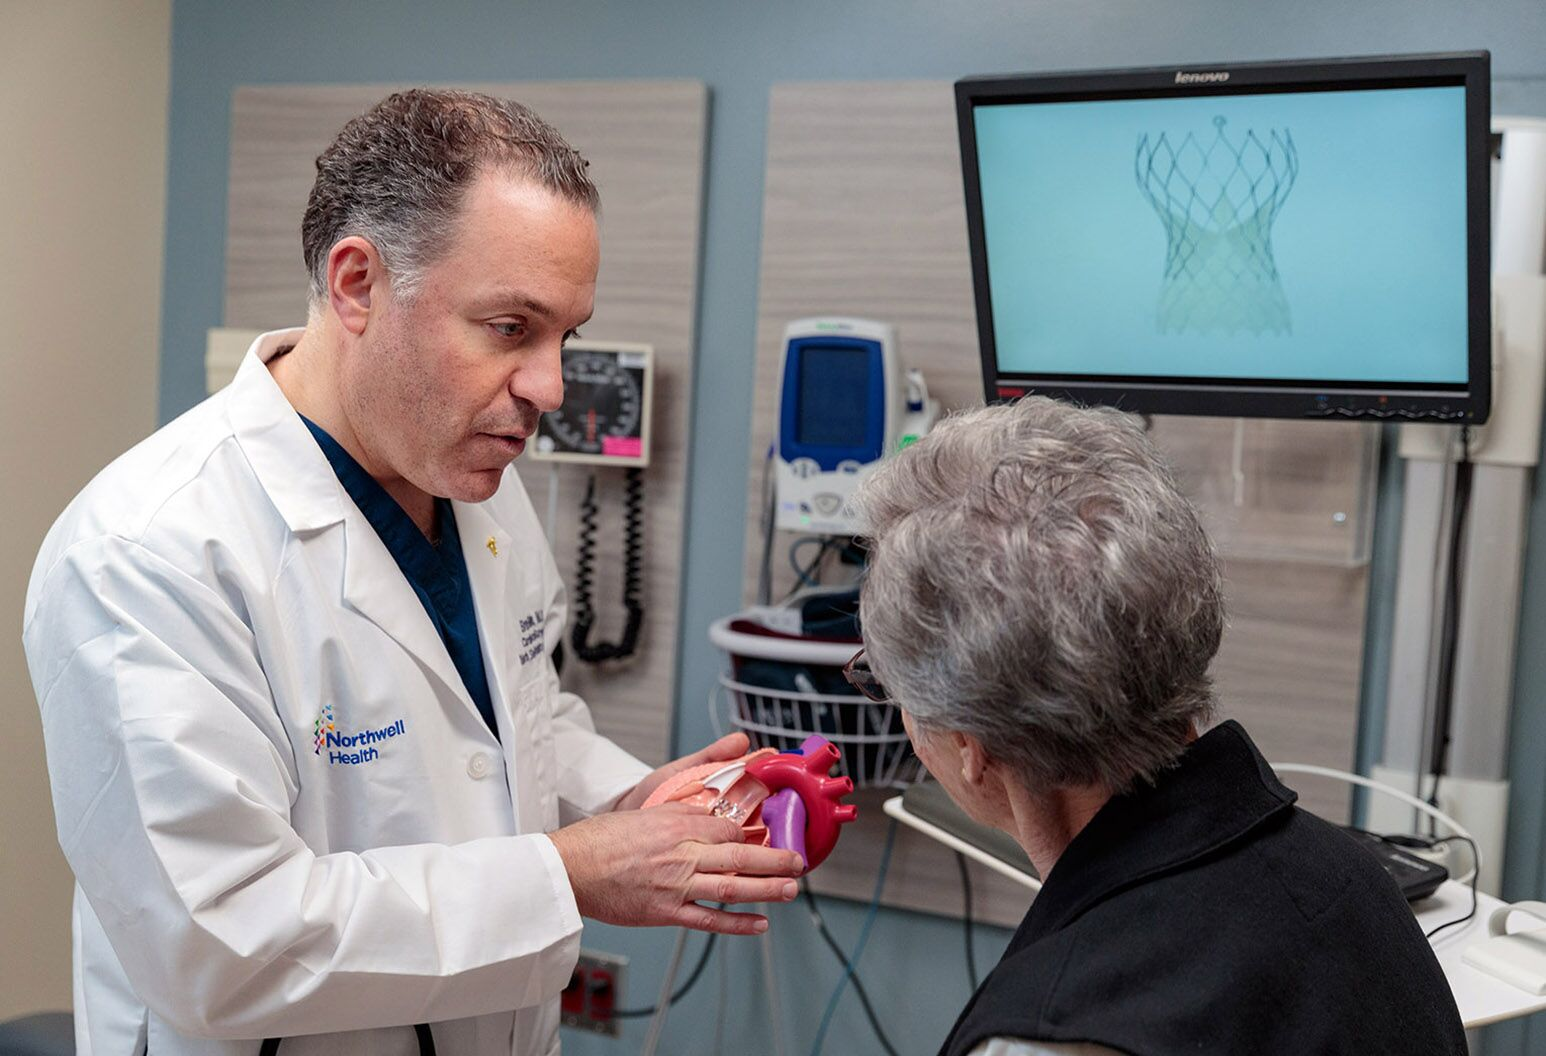 A doctor and patient pictured together, the doctor is holding a model of a heart